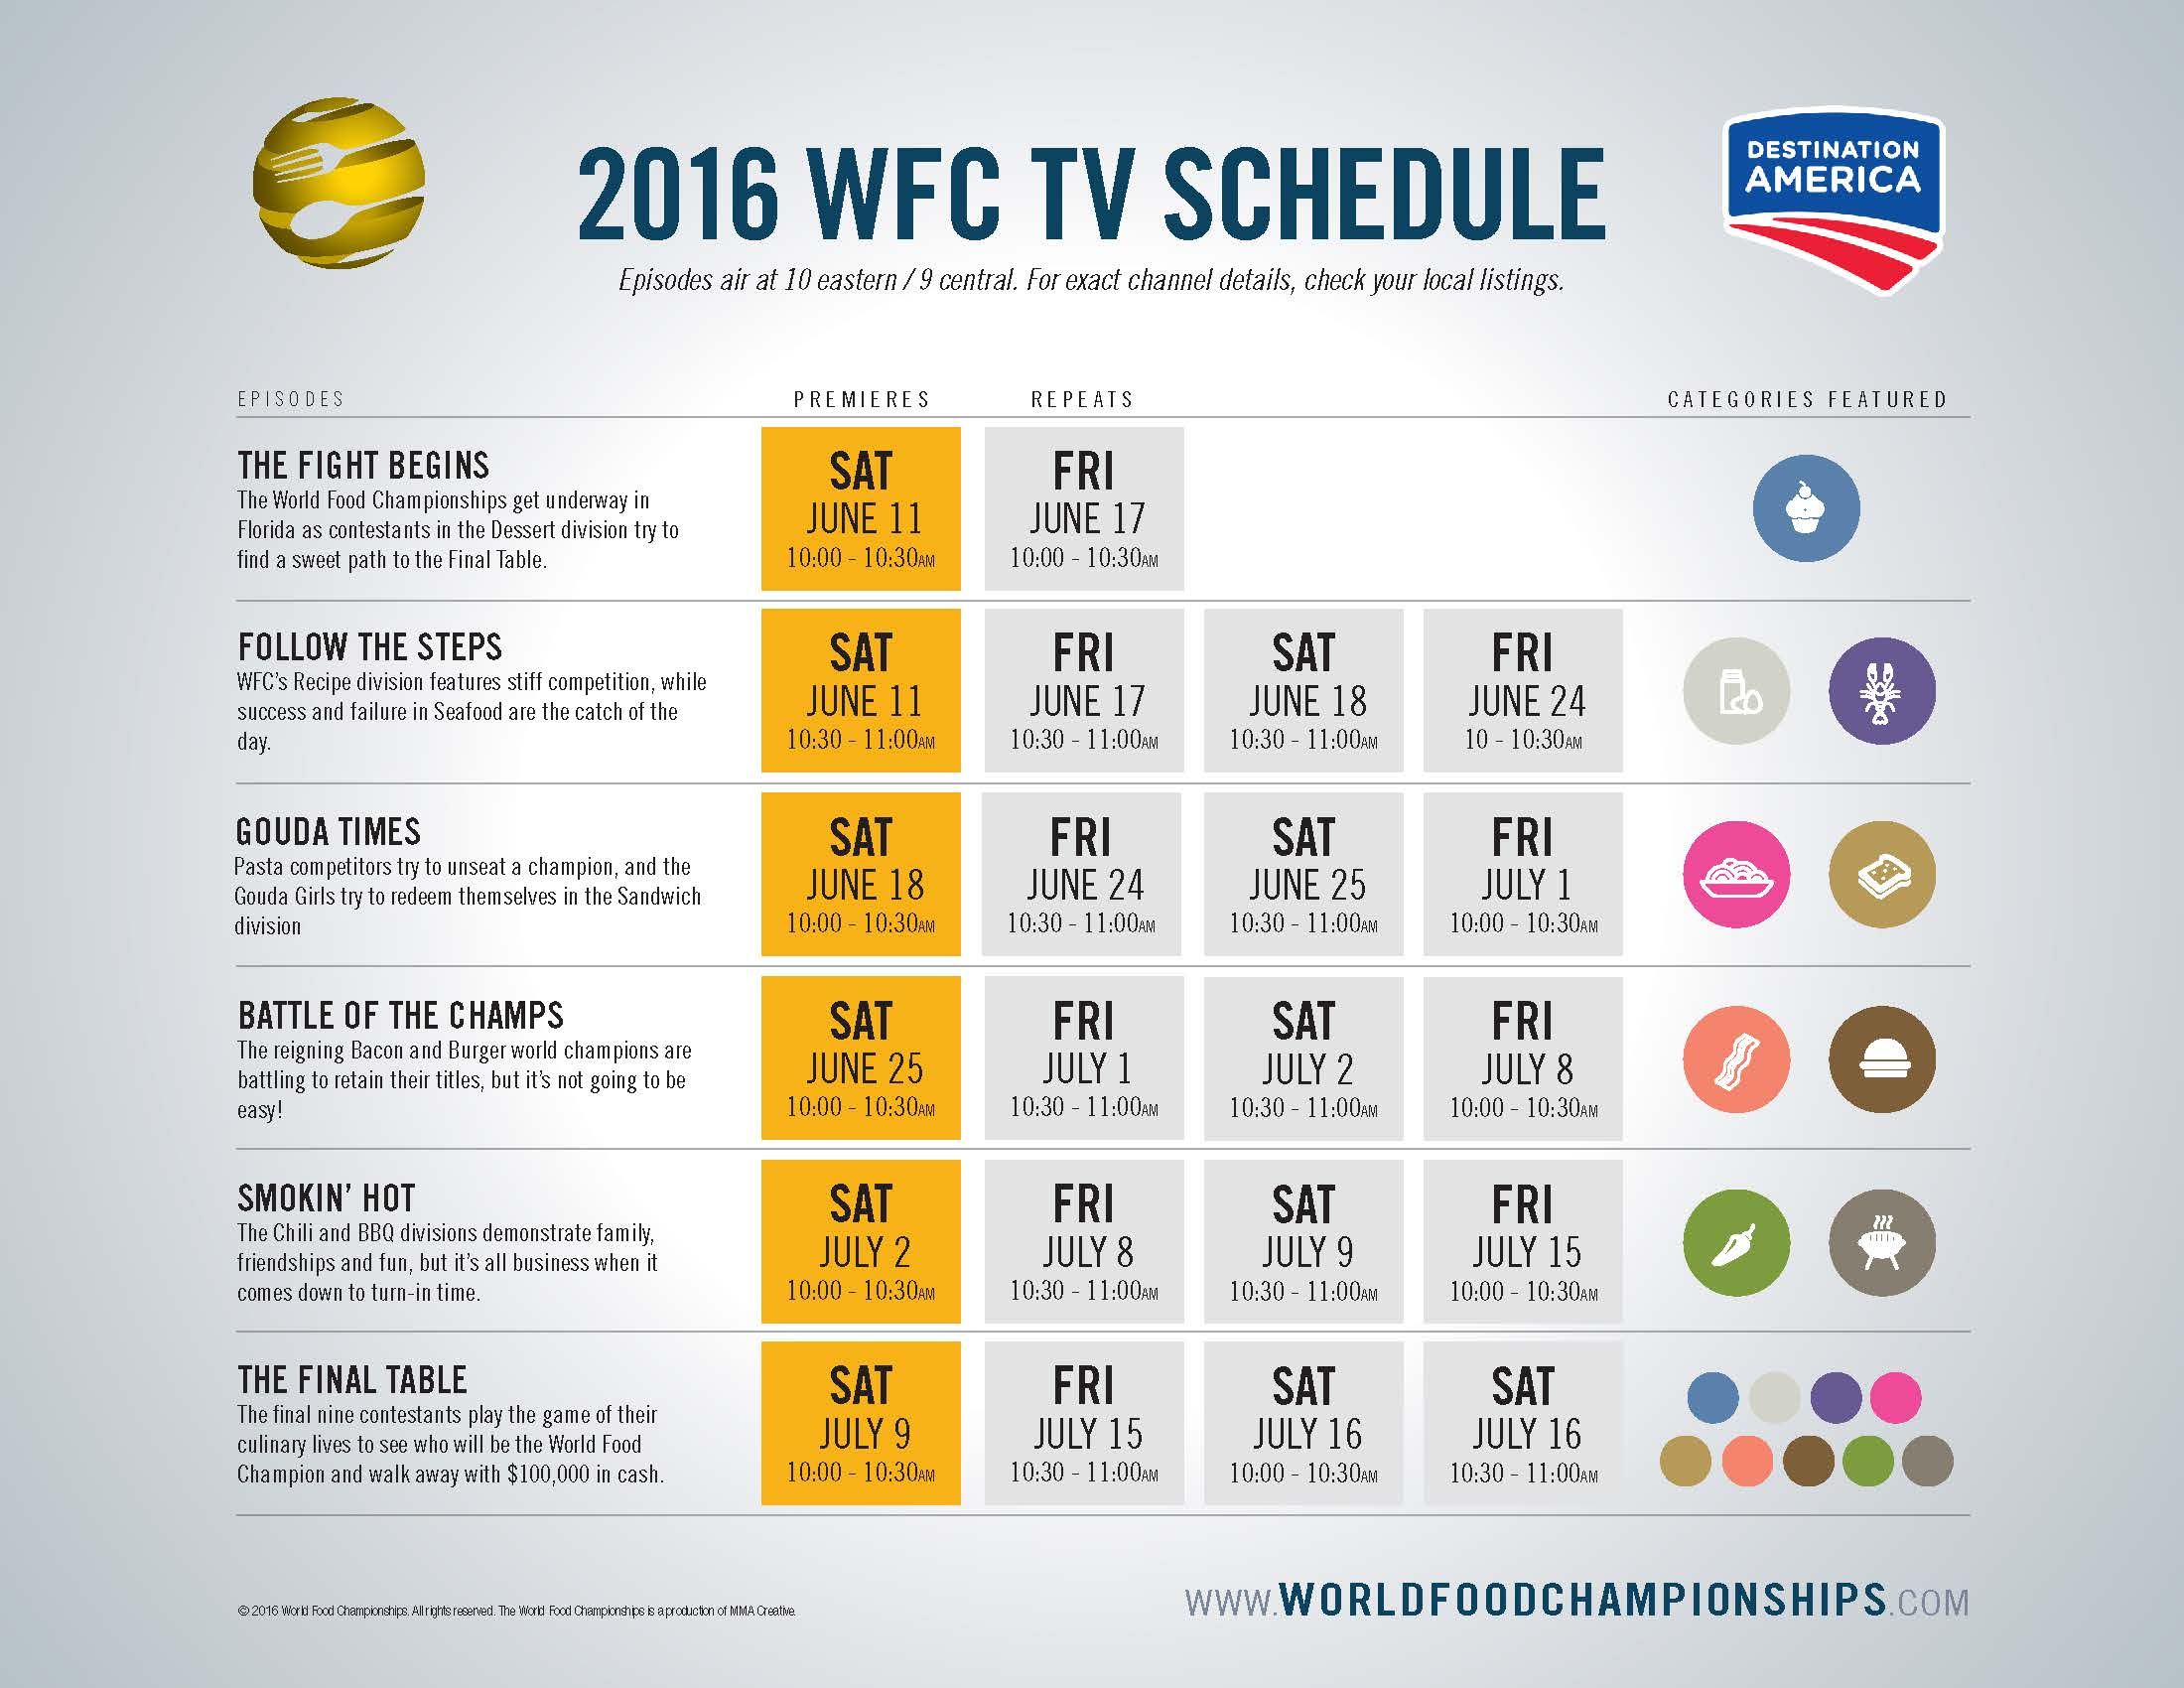 WFC's 4th Championships Now Airing on Destination America in